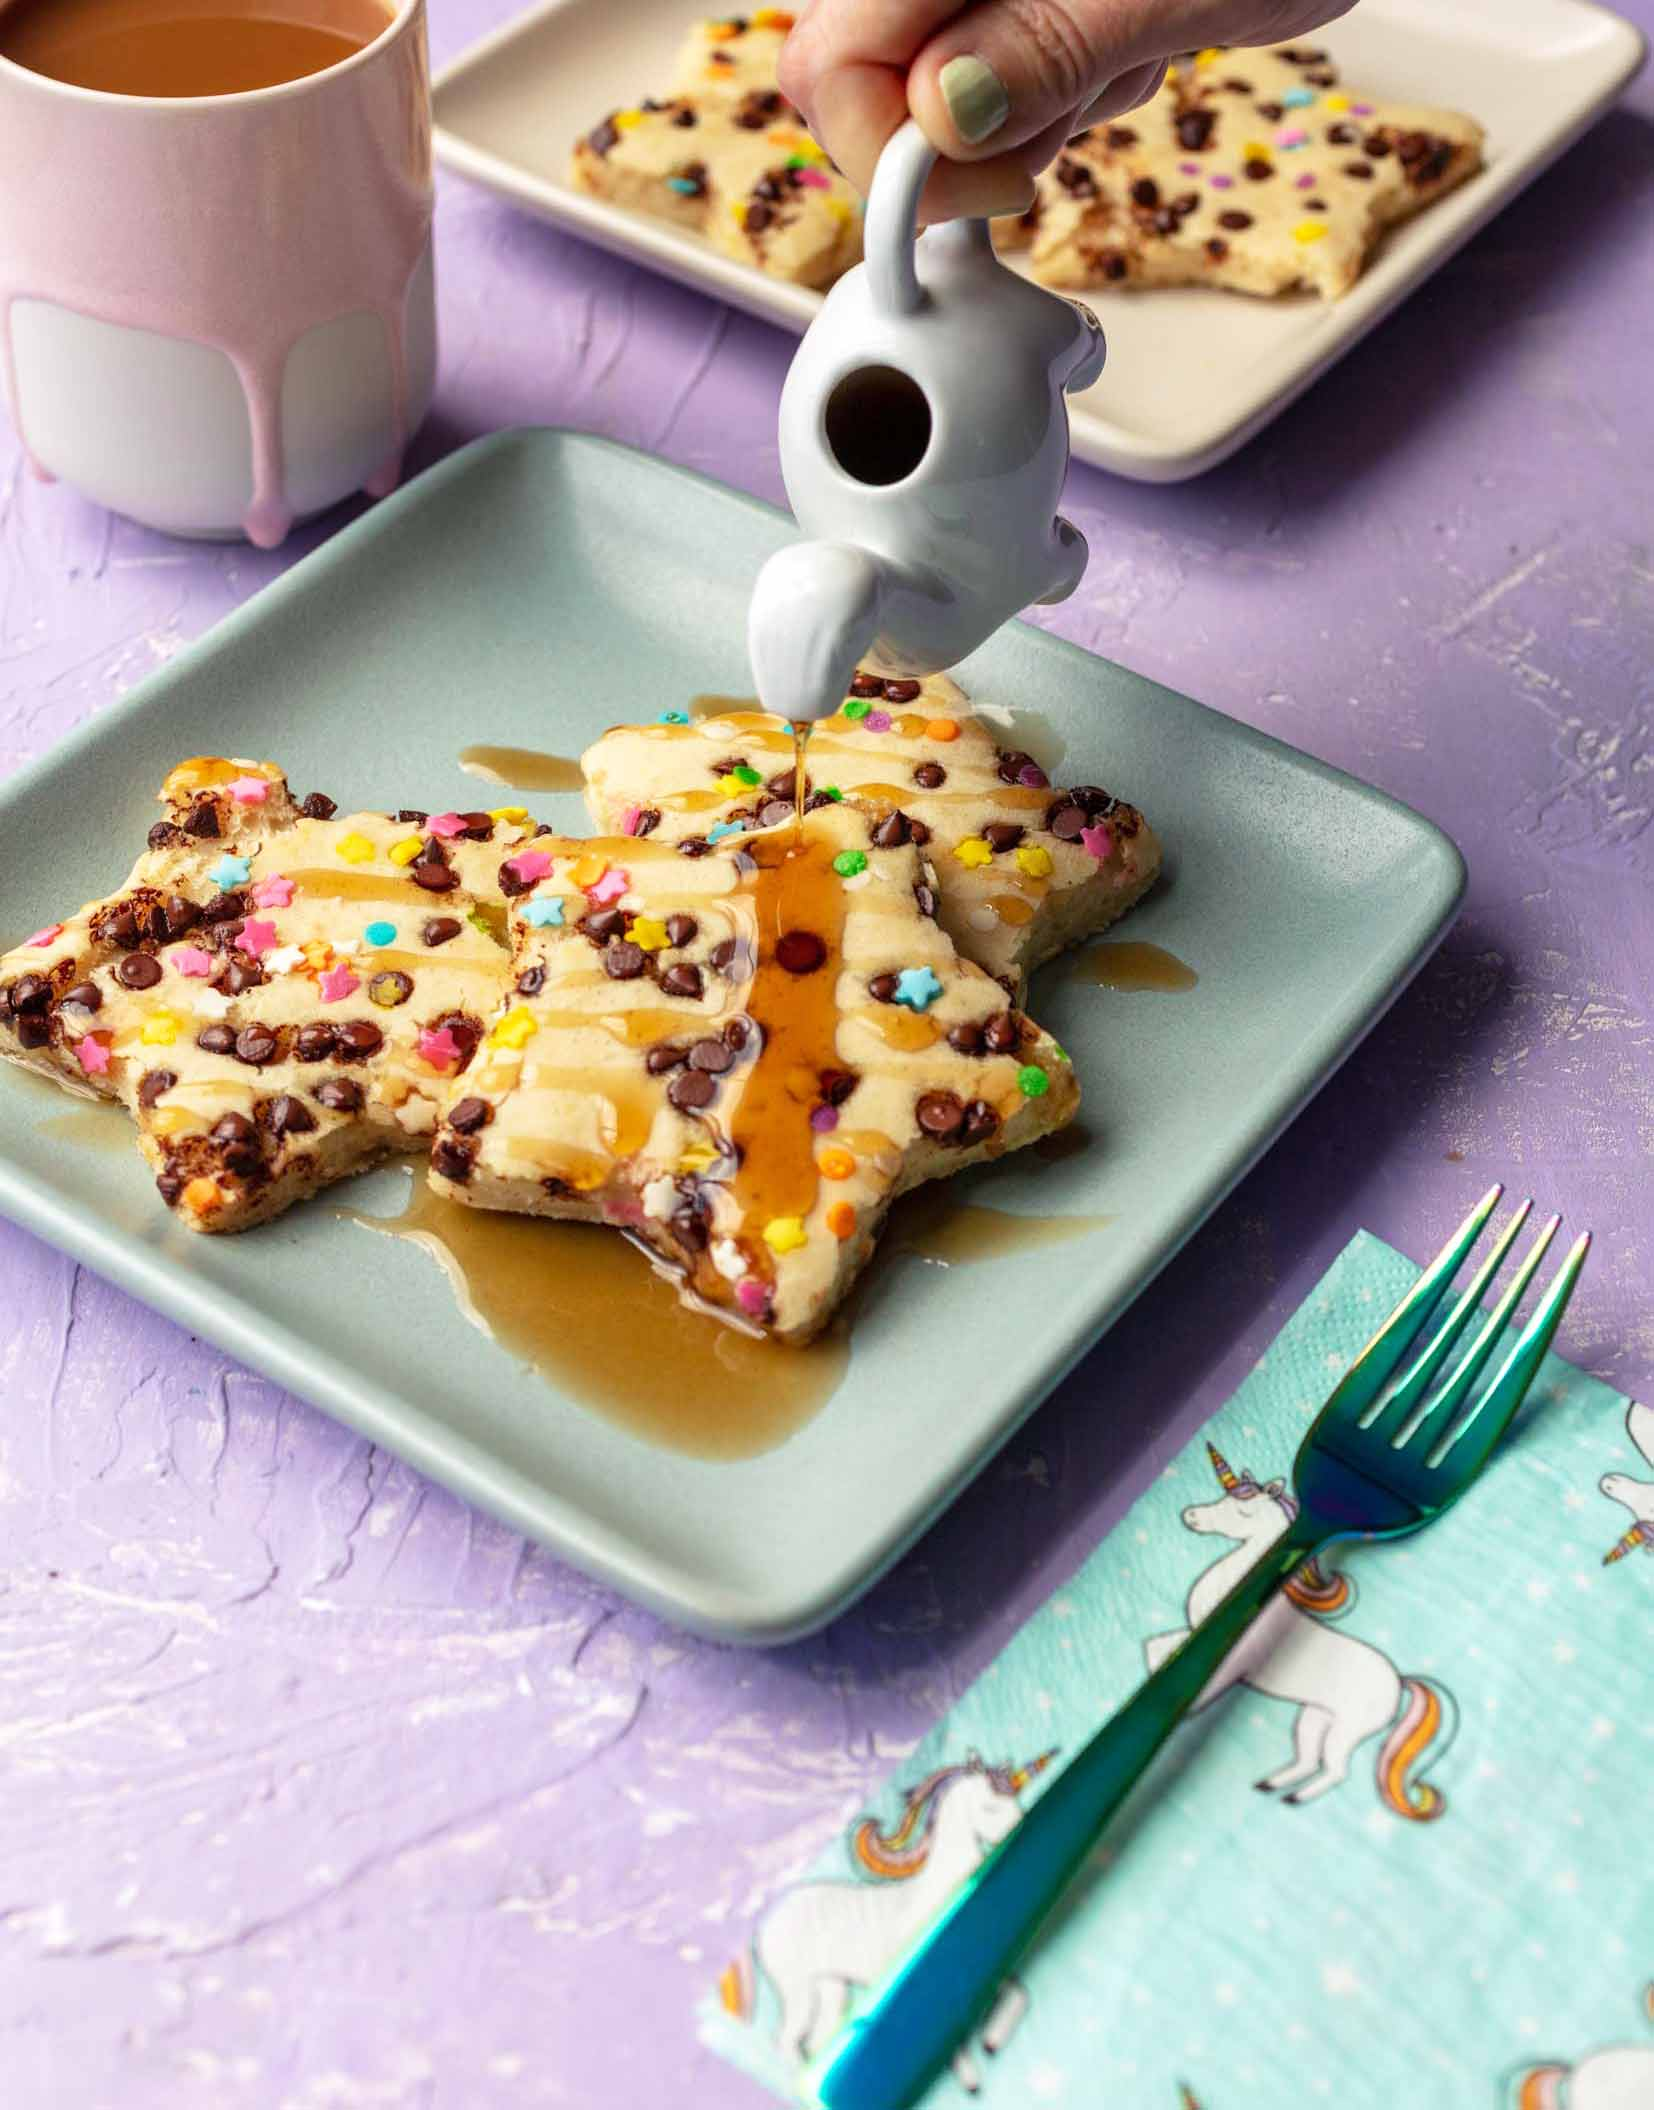 star shaped funfetti chocolate chip pancakes with maple syrup being poured on them